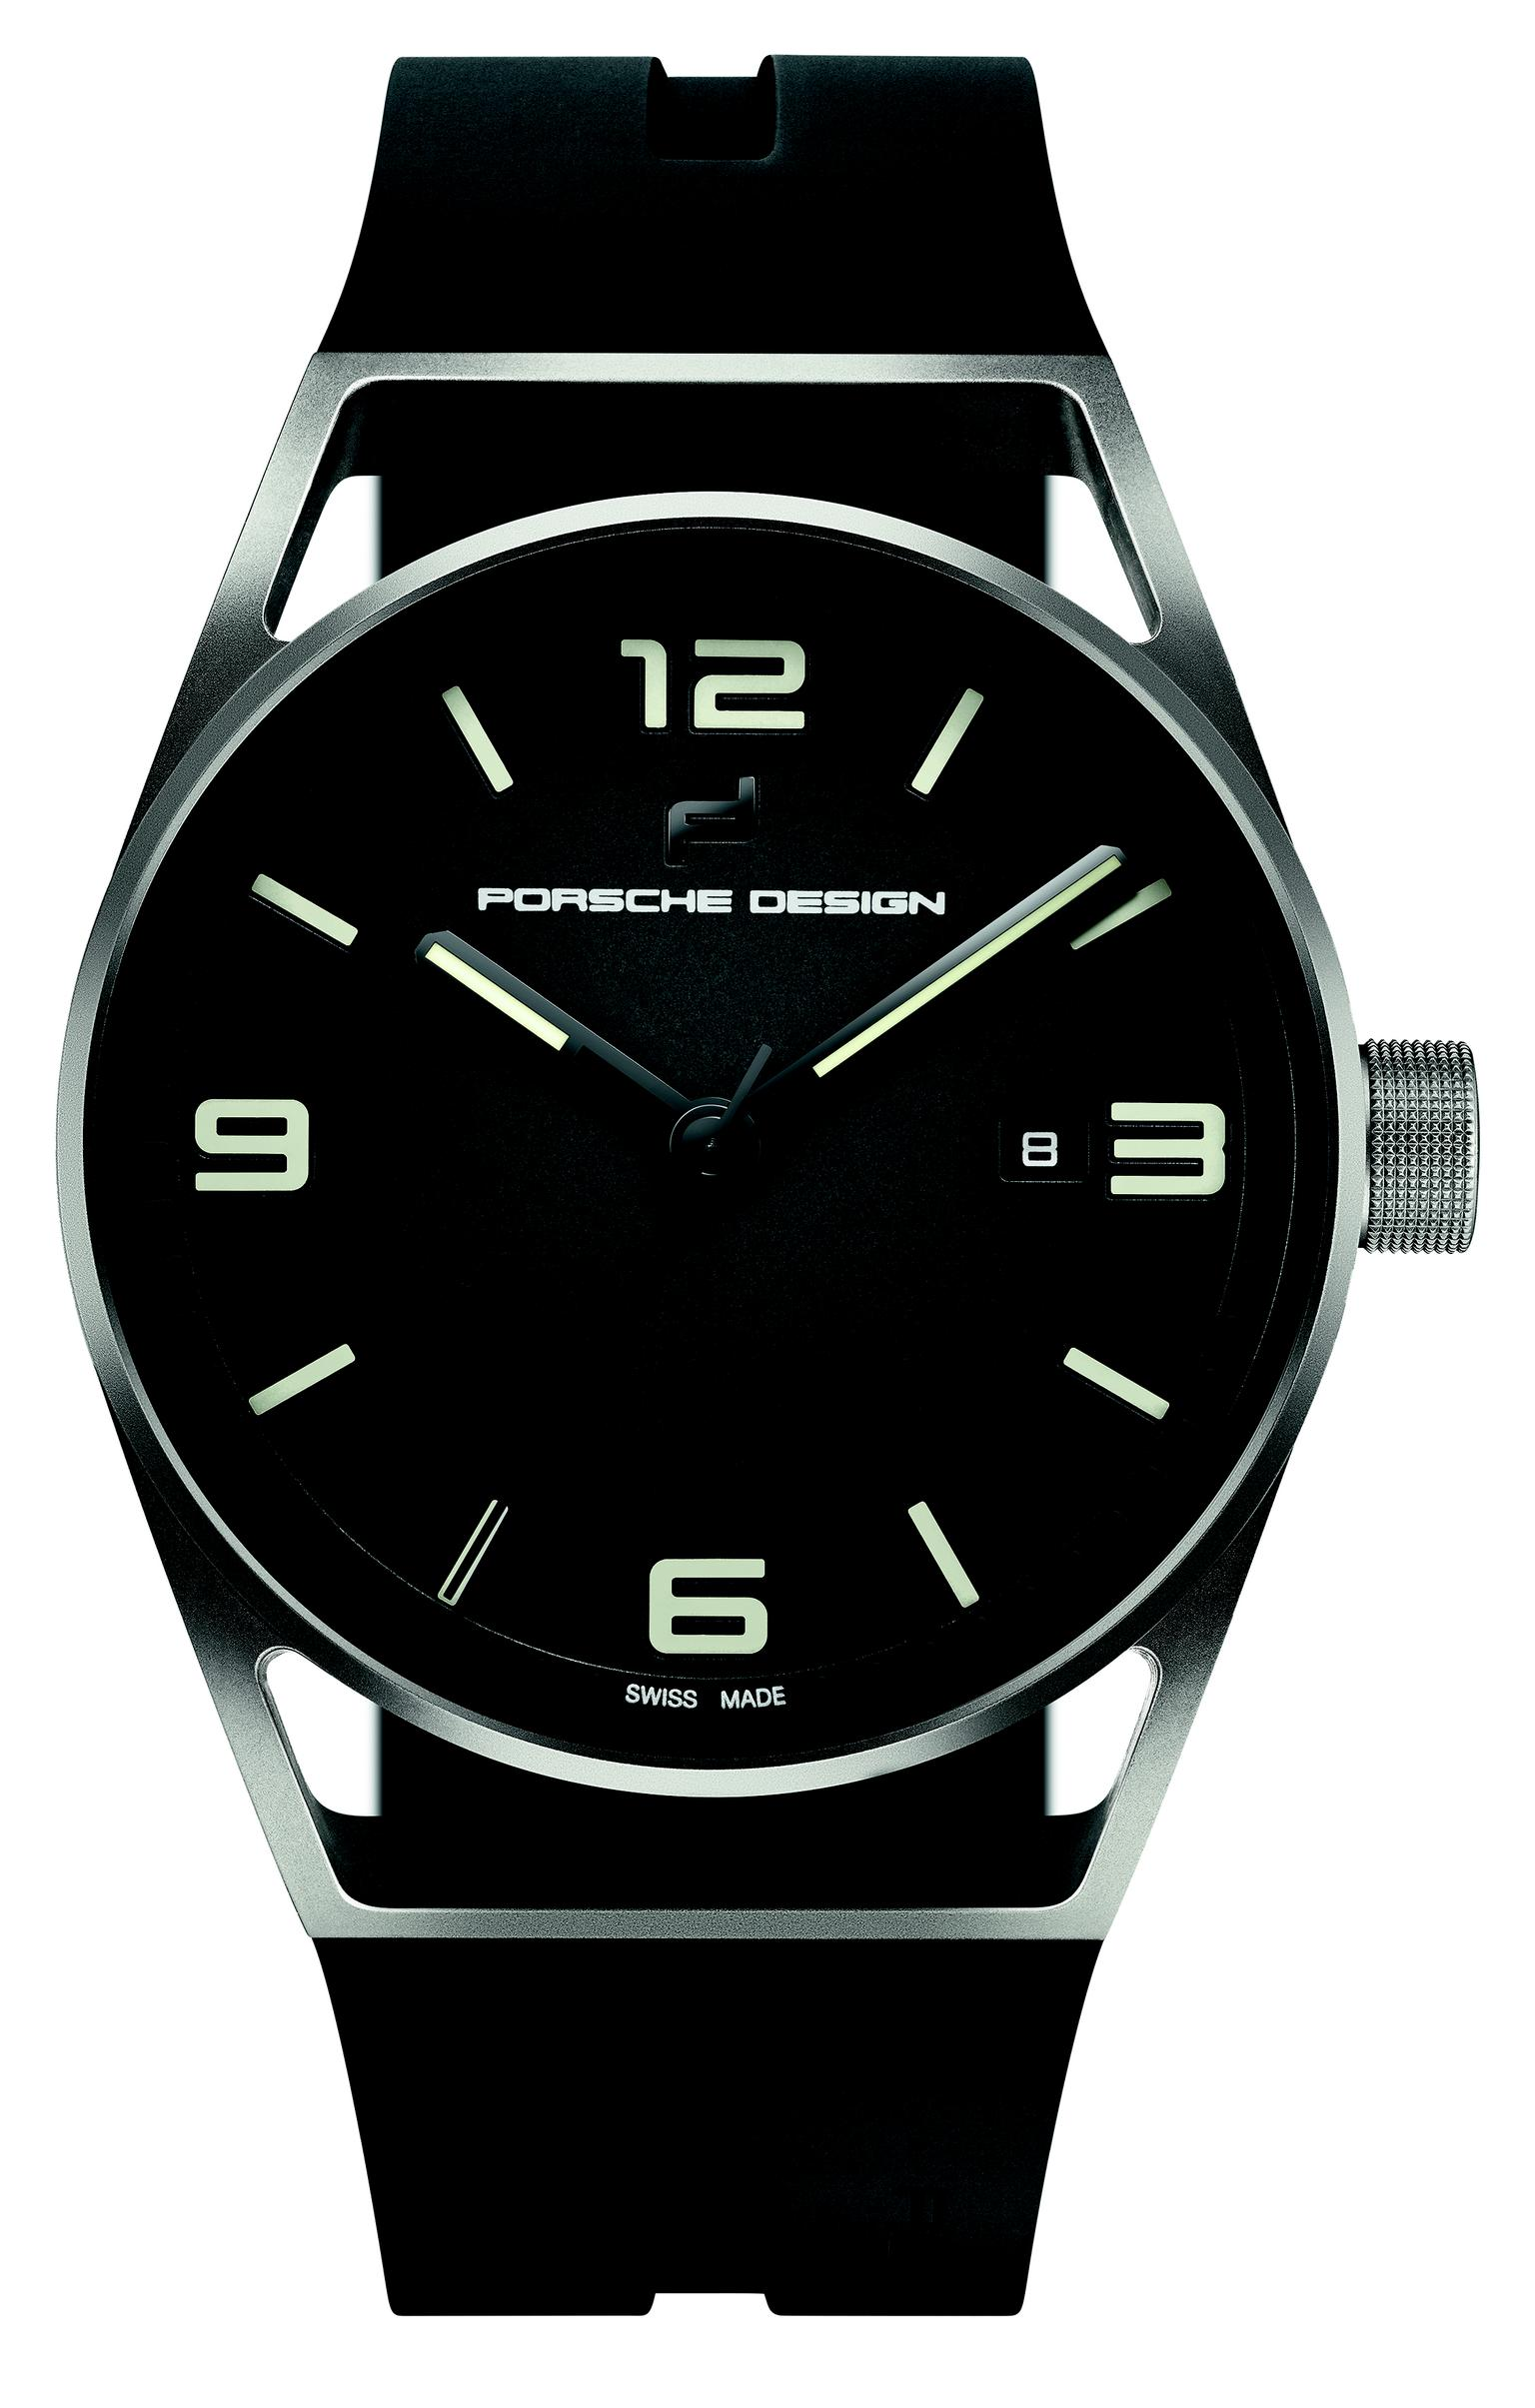 Porsche Design 1919 Datetimer watch